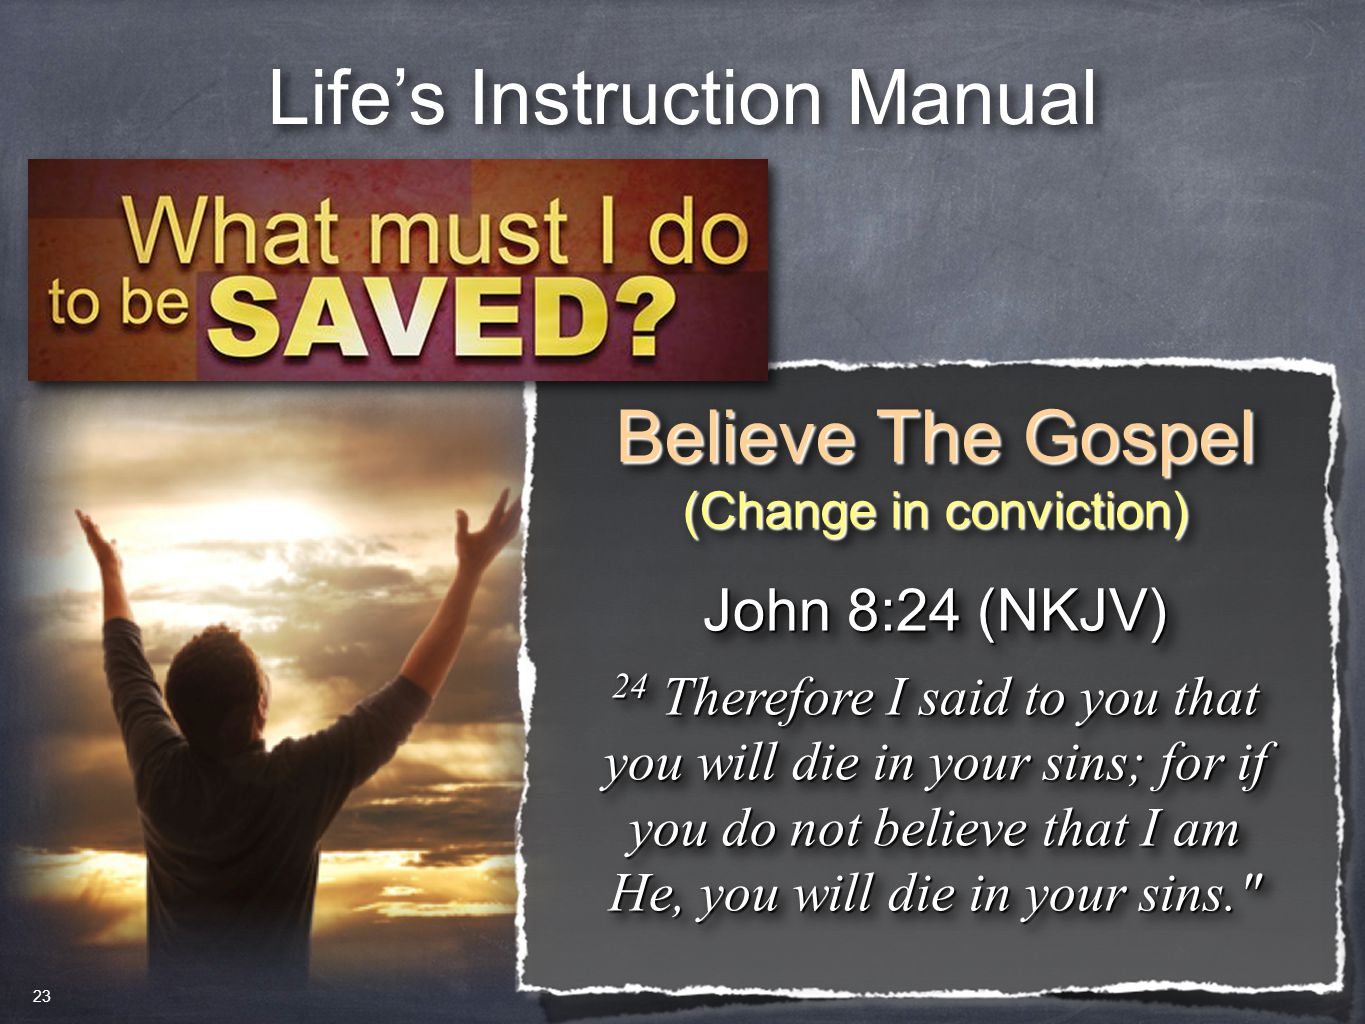 Life's Instruction Manual Believe The Gospel (Change in conviction) Believe The Gospel (Change in conviction) John 8:24 (NKJV) 24 Therefore I said to